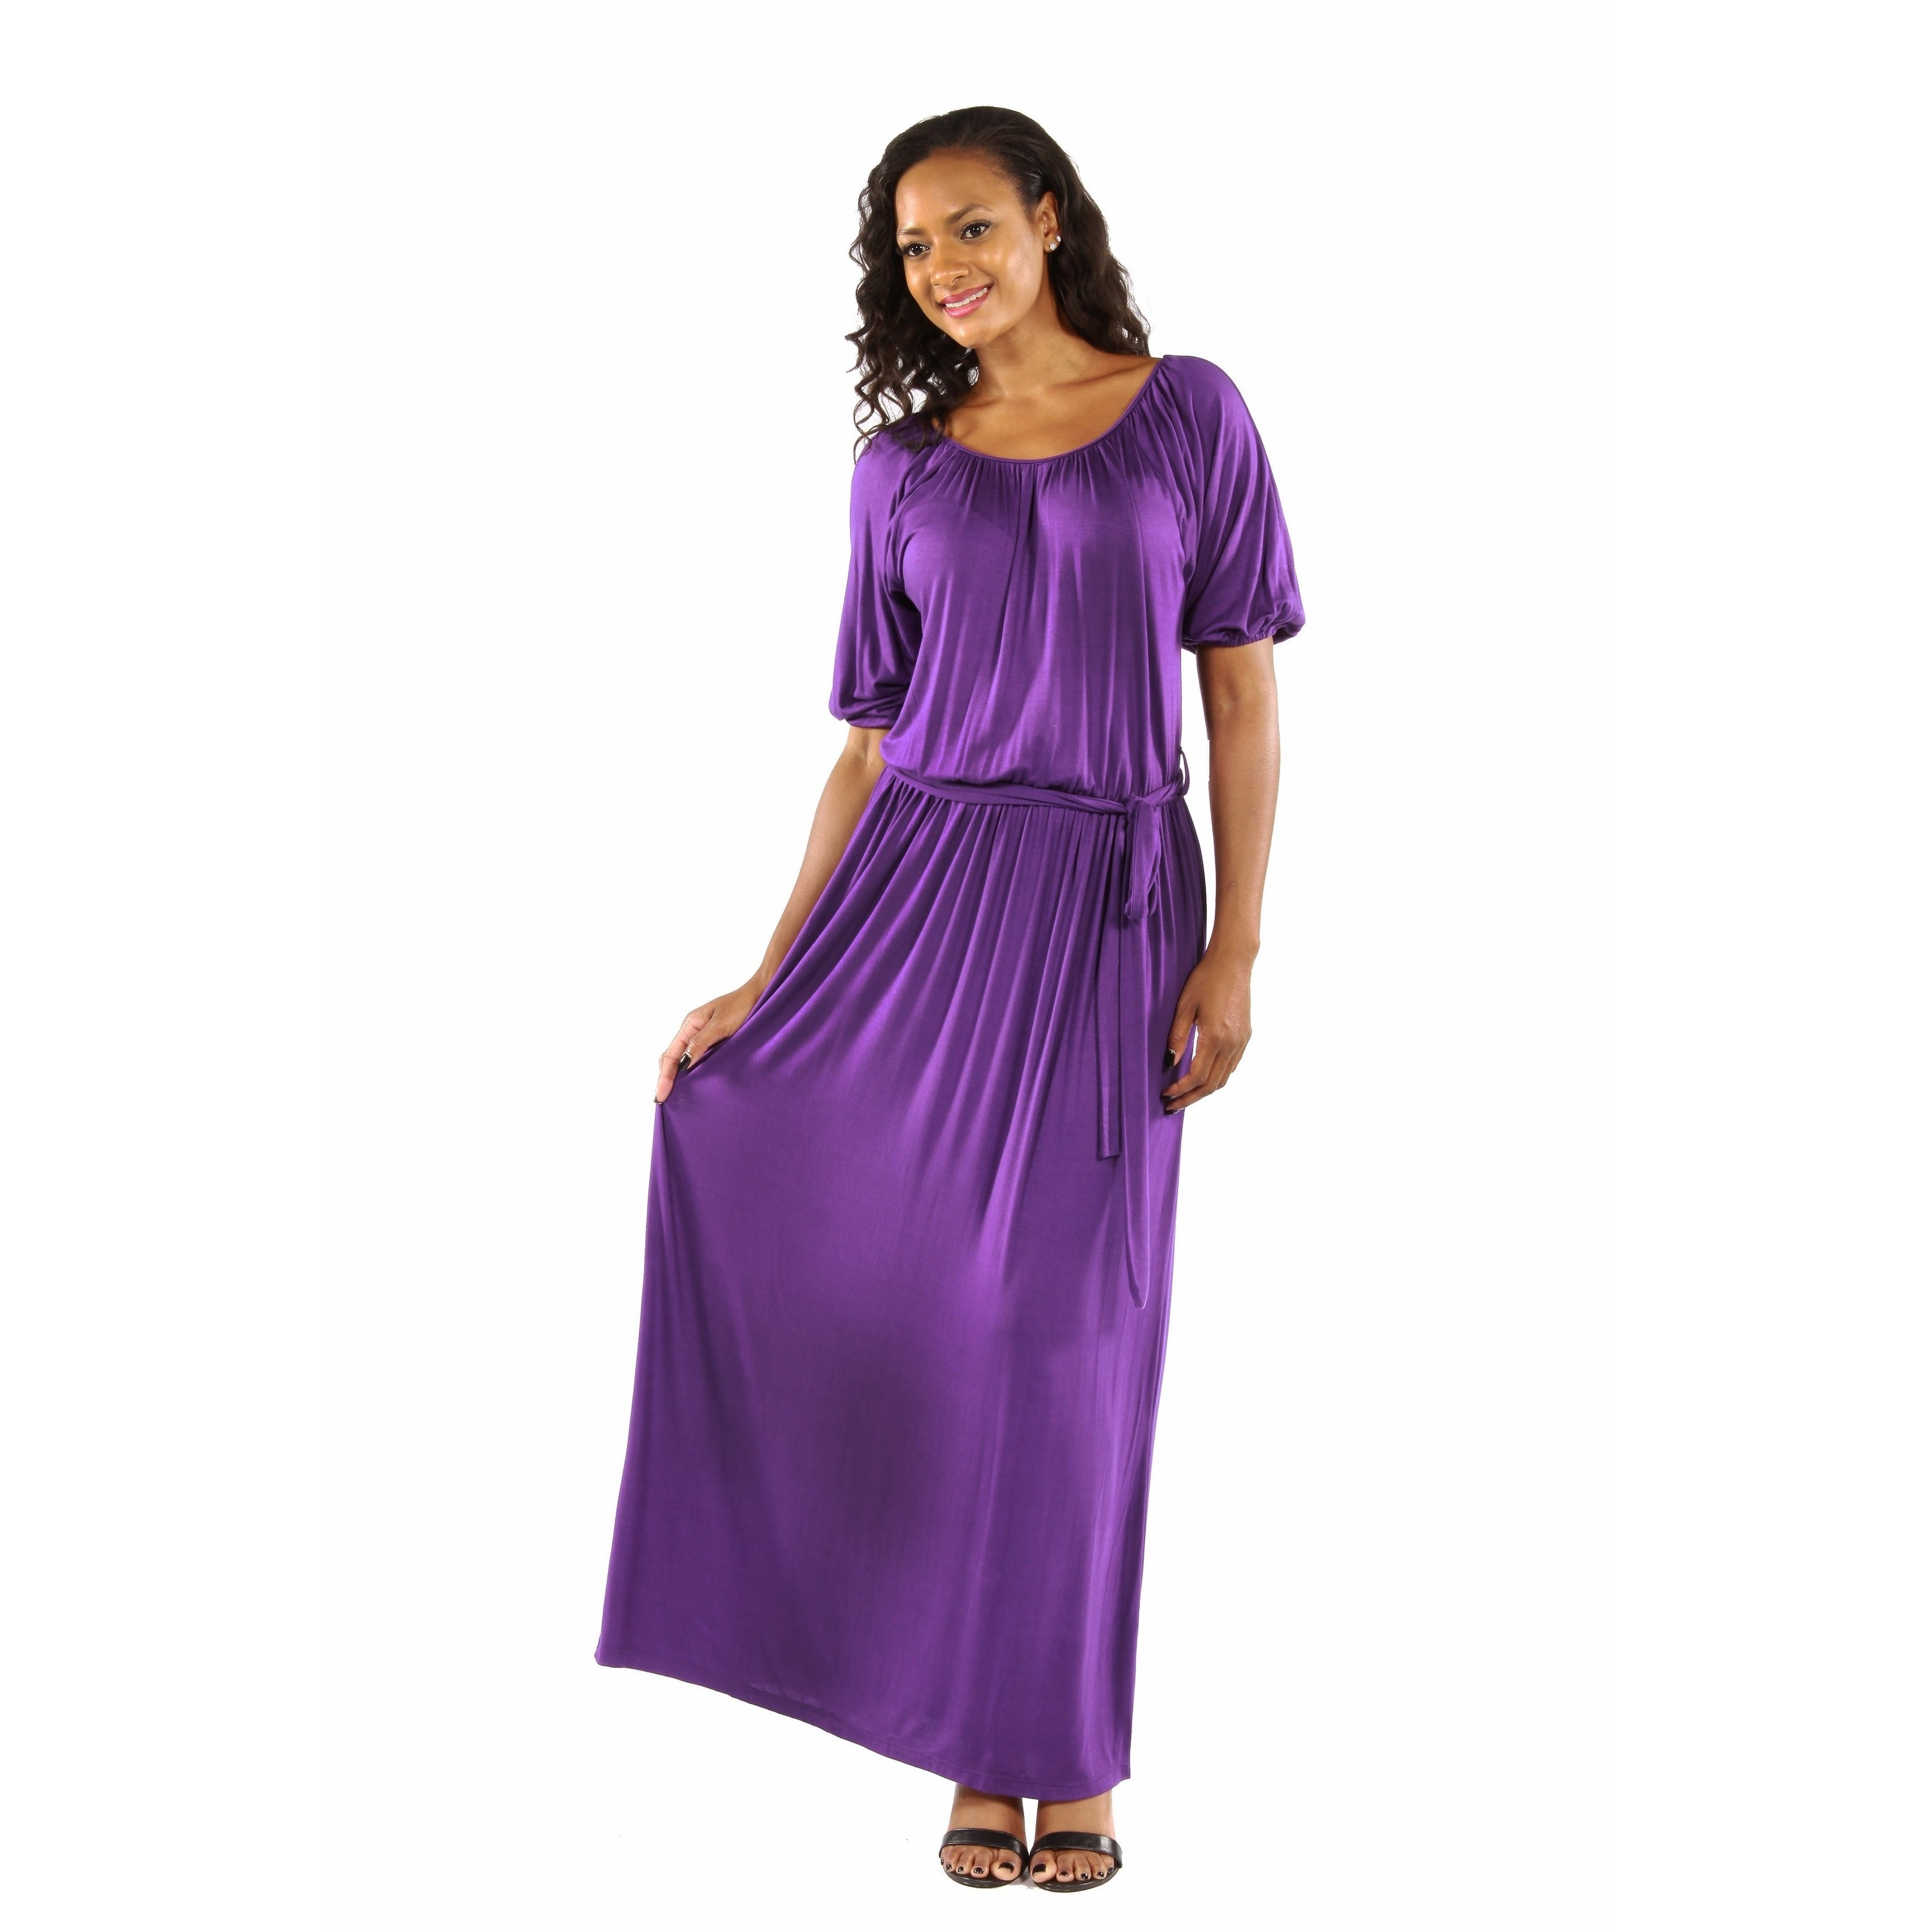 b24317aa7e603 Shop 24/7 Comfort Apparel Women's Feminine, Sexy Maxi Dress for Day and  Night - Free Shipping On Orders Over $45 - Overstock - 12834064